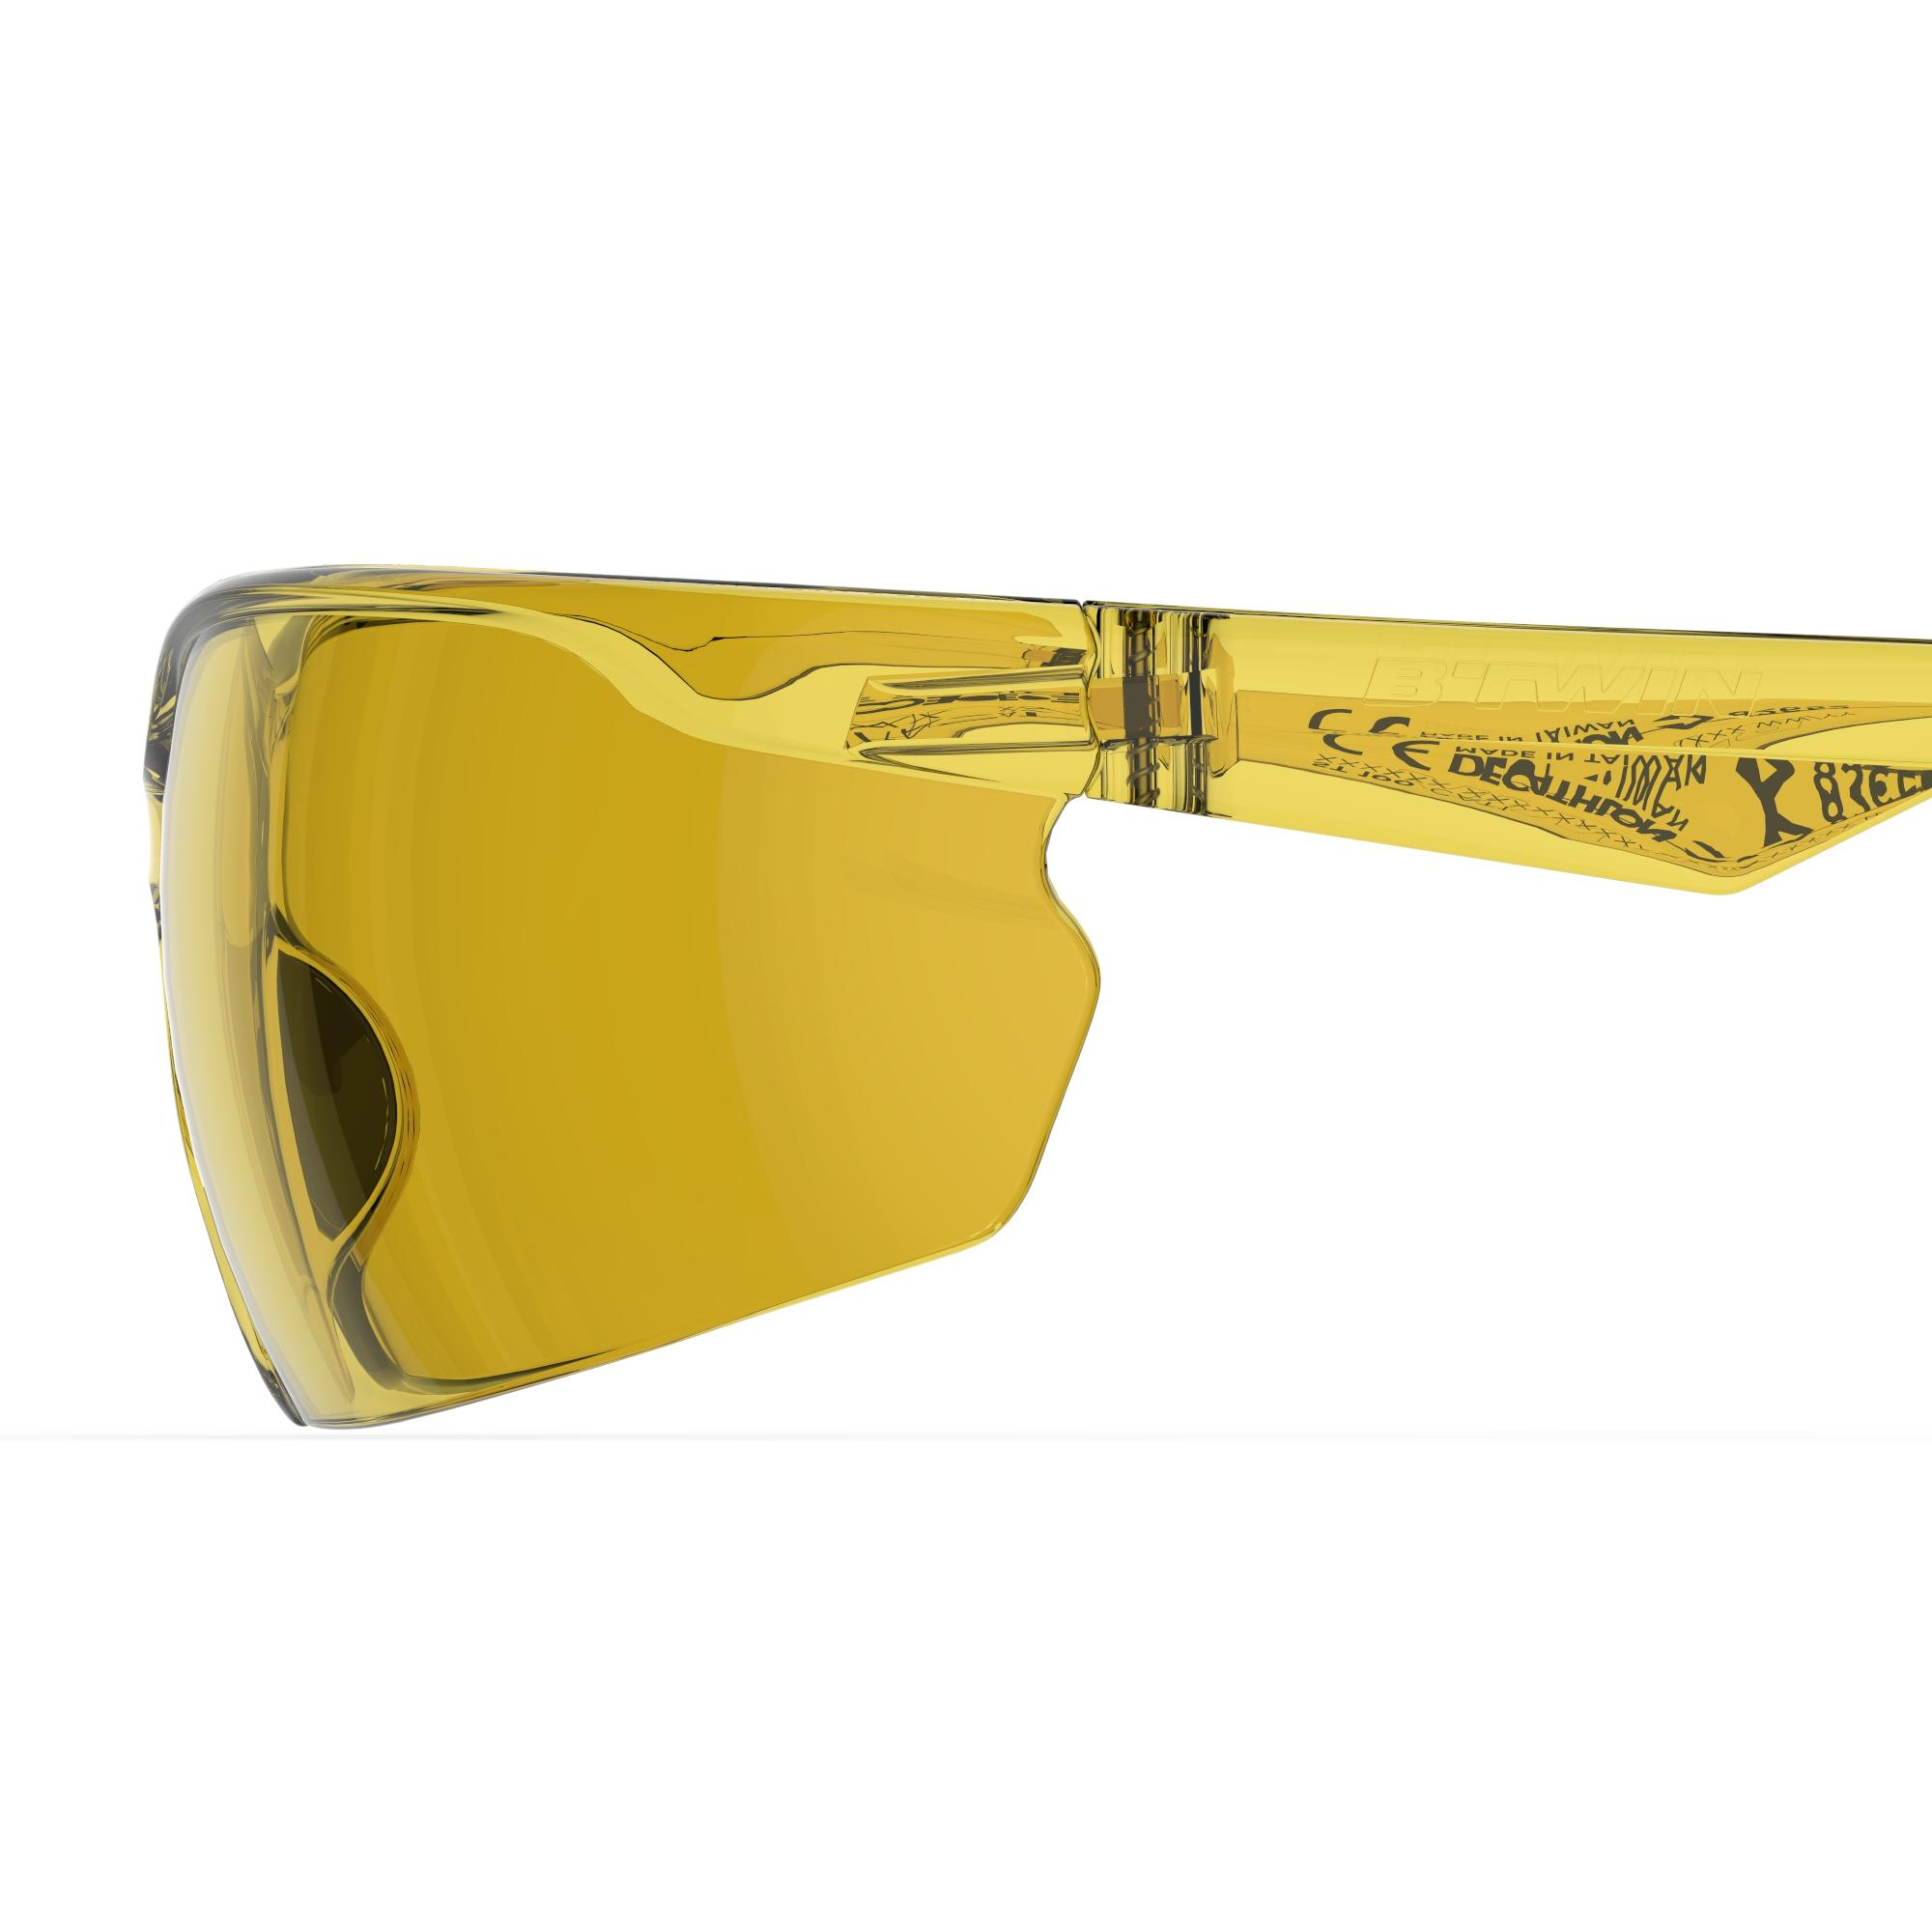 ST 100 Adult Mountain Bike Sunglasses Category 1 - Yellow